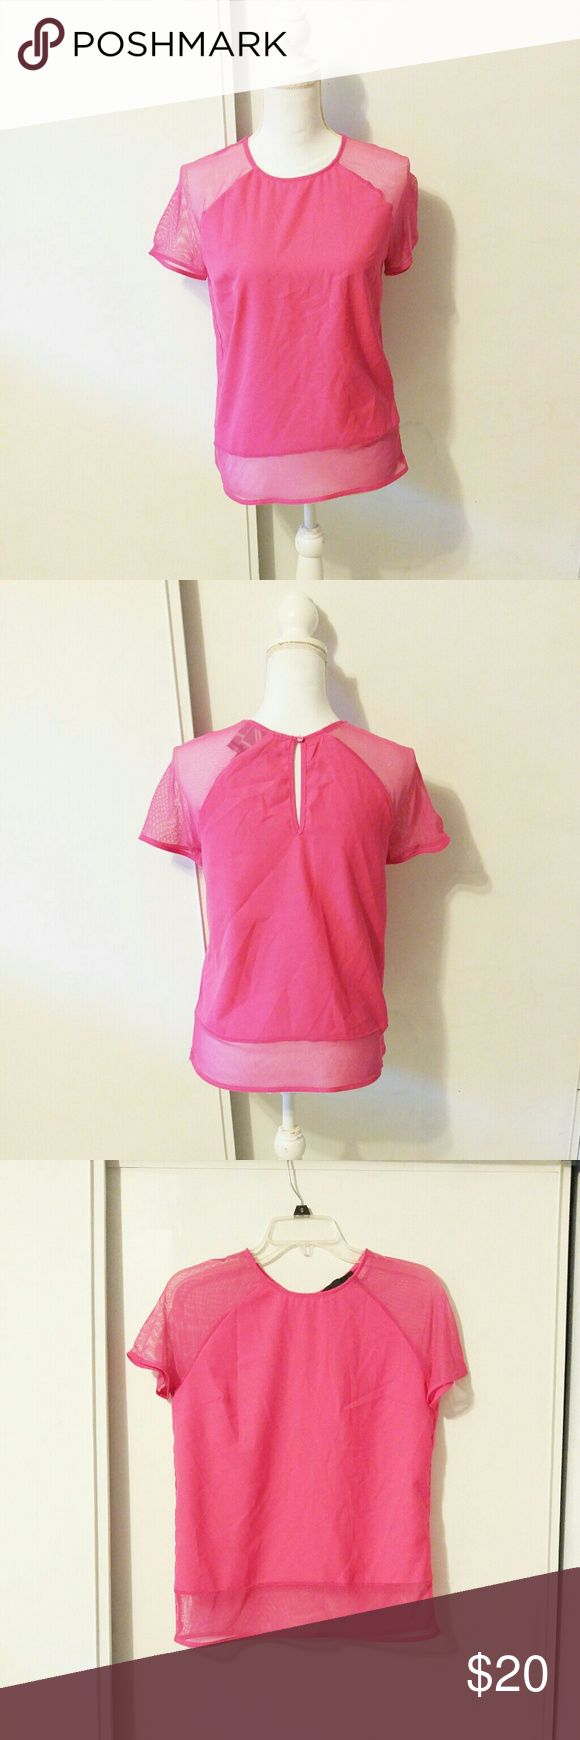 Harlome and Graham vibrant pink T-shirt with mesh BRAND: Harlome and graham  SIZE: no tag but fits a small  FLAW: none  COLOR: pink  DESCRIPTION: vibrant bright pink T-shirt from Harlome and Graham with mesh sleeves.This shirt is so chic! The short sleeves are mesh (front and back) There is also a 3 inch mesh strip on the bottom of the shirt! Very vibrant and goes amazing with nice jeans. Keyhole back. Polyester/Spandex. Crew Neck Slim Fit. Retails$68.00  The mannequin measurements are…